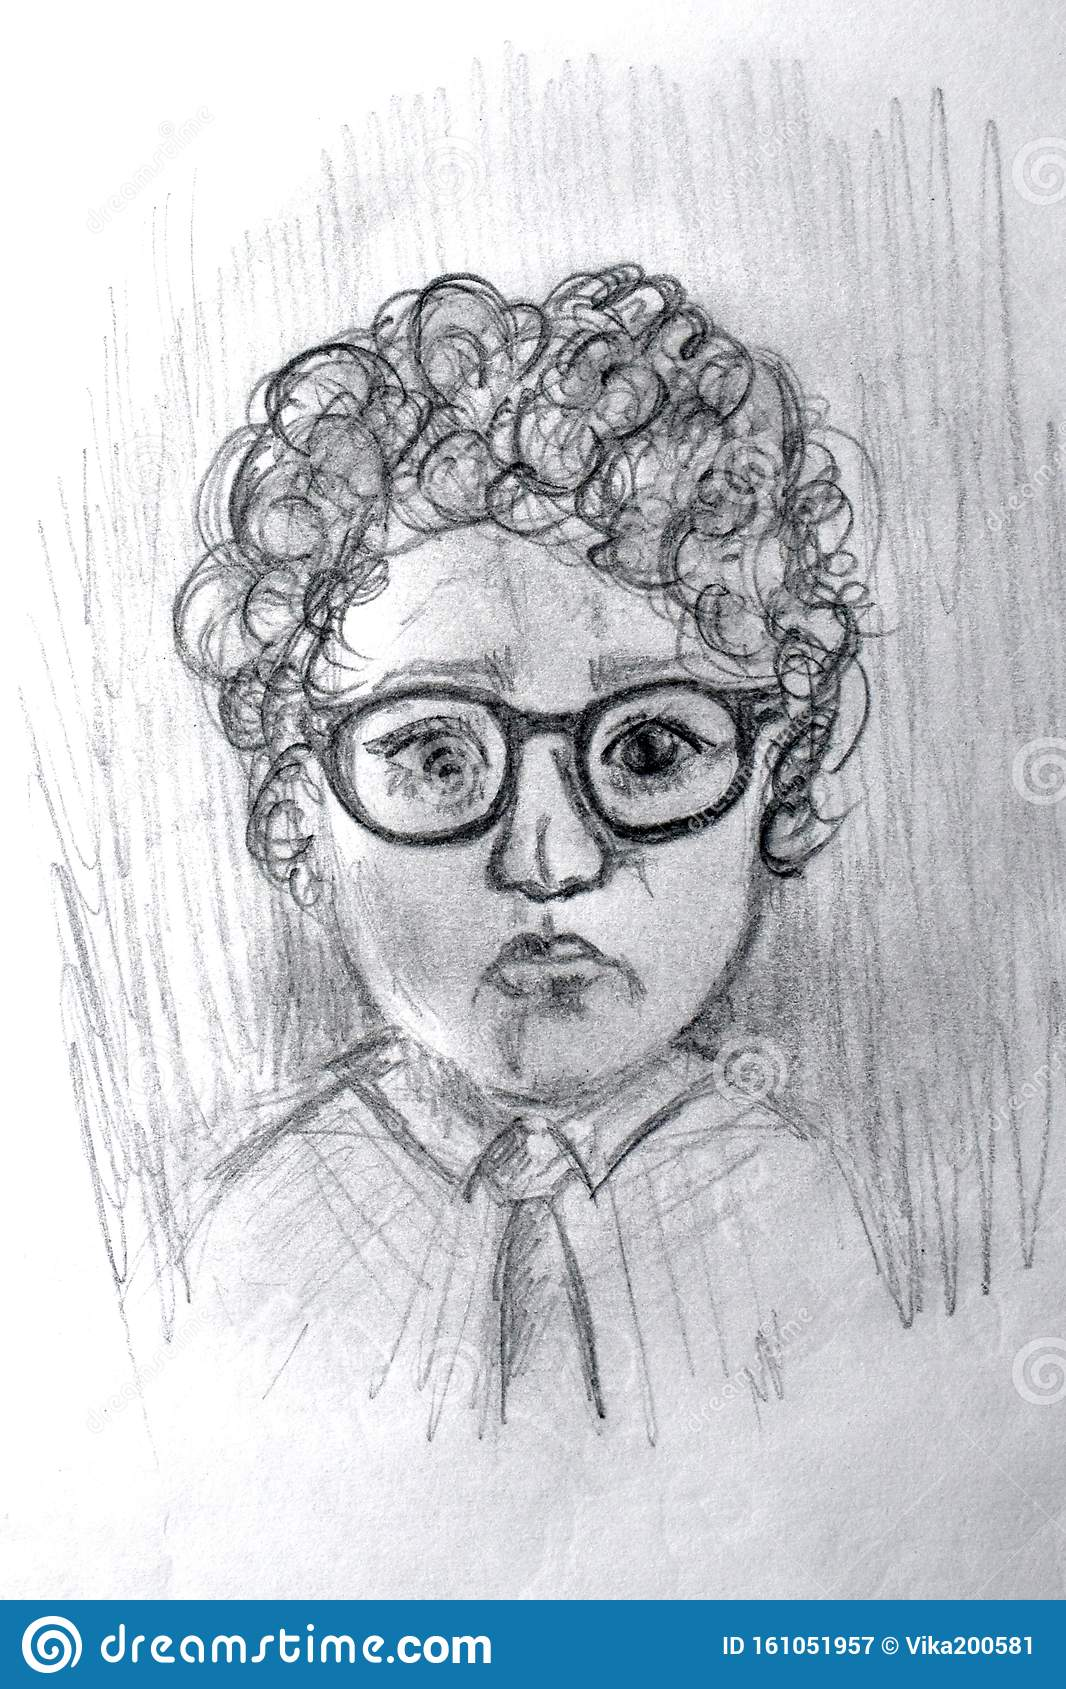 Portrait Of A Schoolboy In Glasses By Simple Pencil Black And White Pencil Sketch Of A Child Stock Image Image Of Closeup Design 161051957